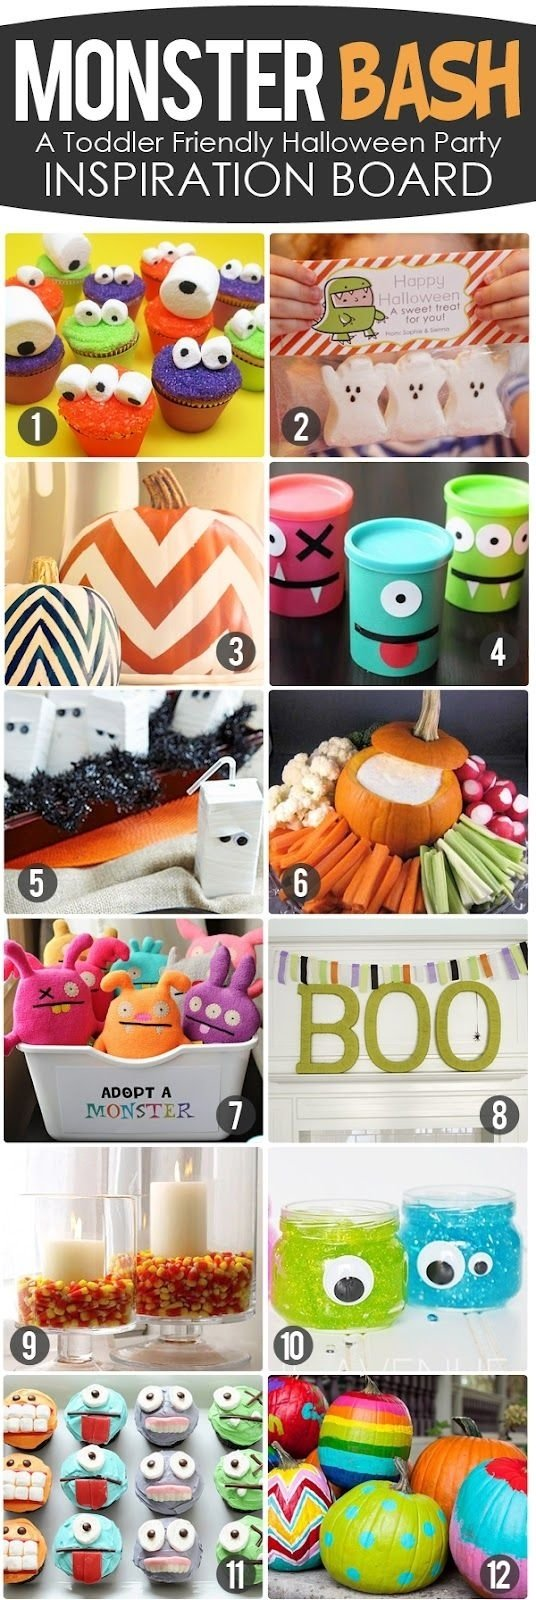 10 Trendy Halloween Birthday Party Ideas For Kids the busy budgeting mama monster bash toddler friendly halloween 2021